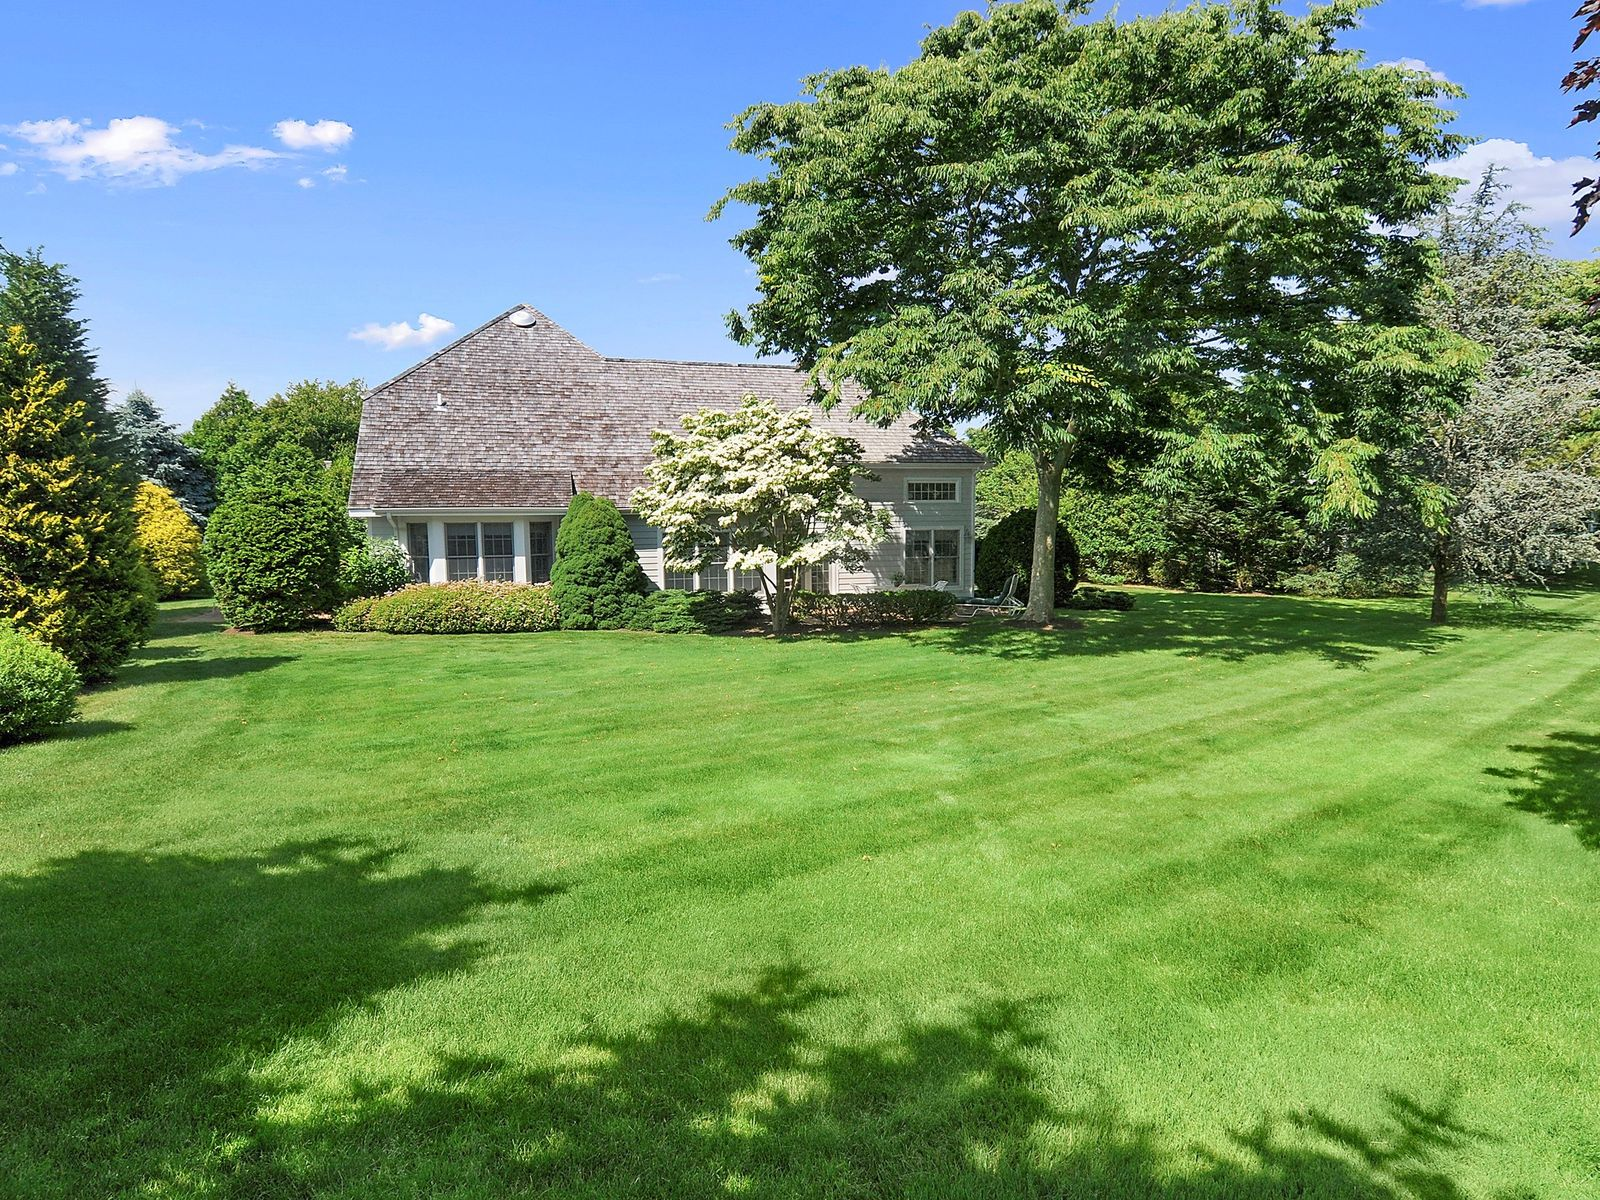 Private and Serene Home Near Ocean, Southampton NY Single Family Home - Hamptons Real Estate